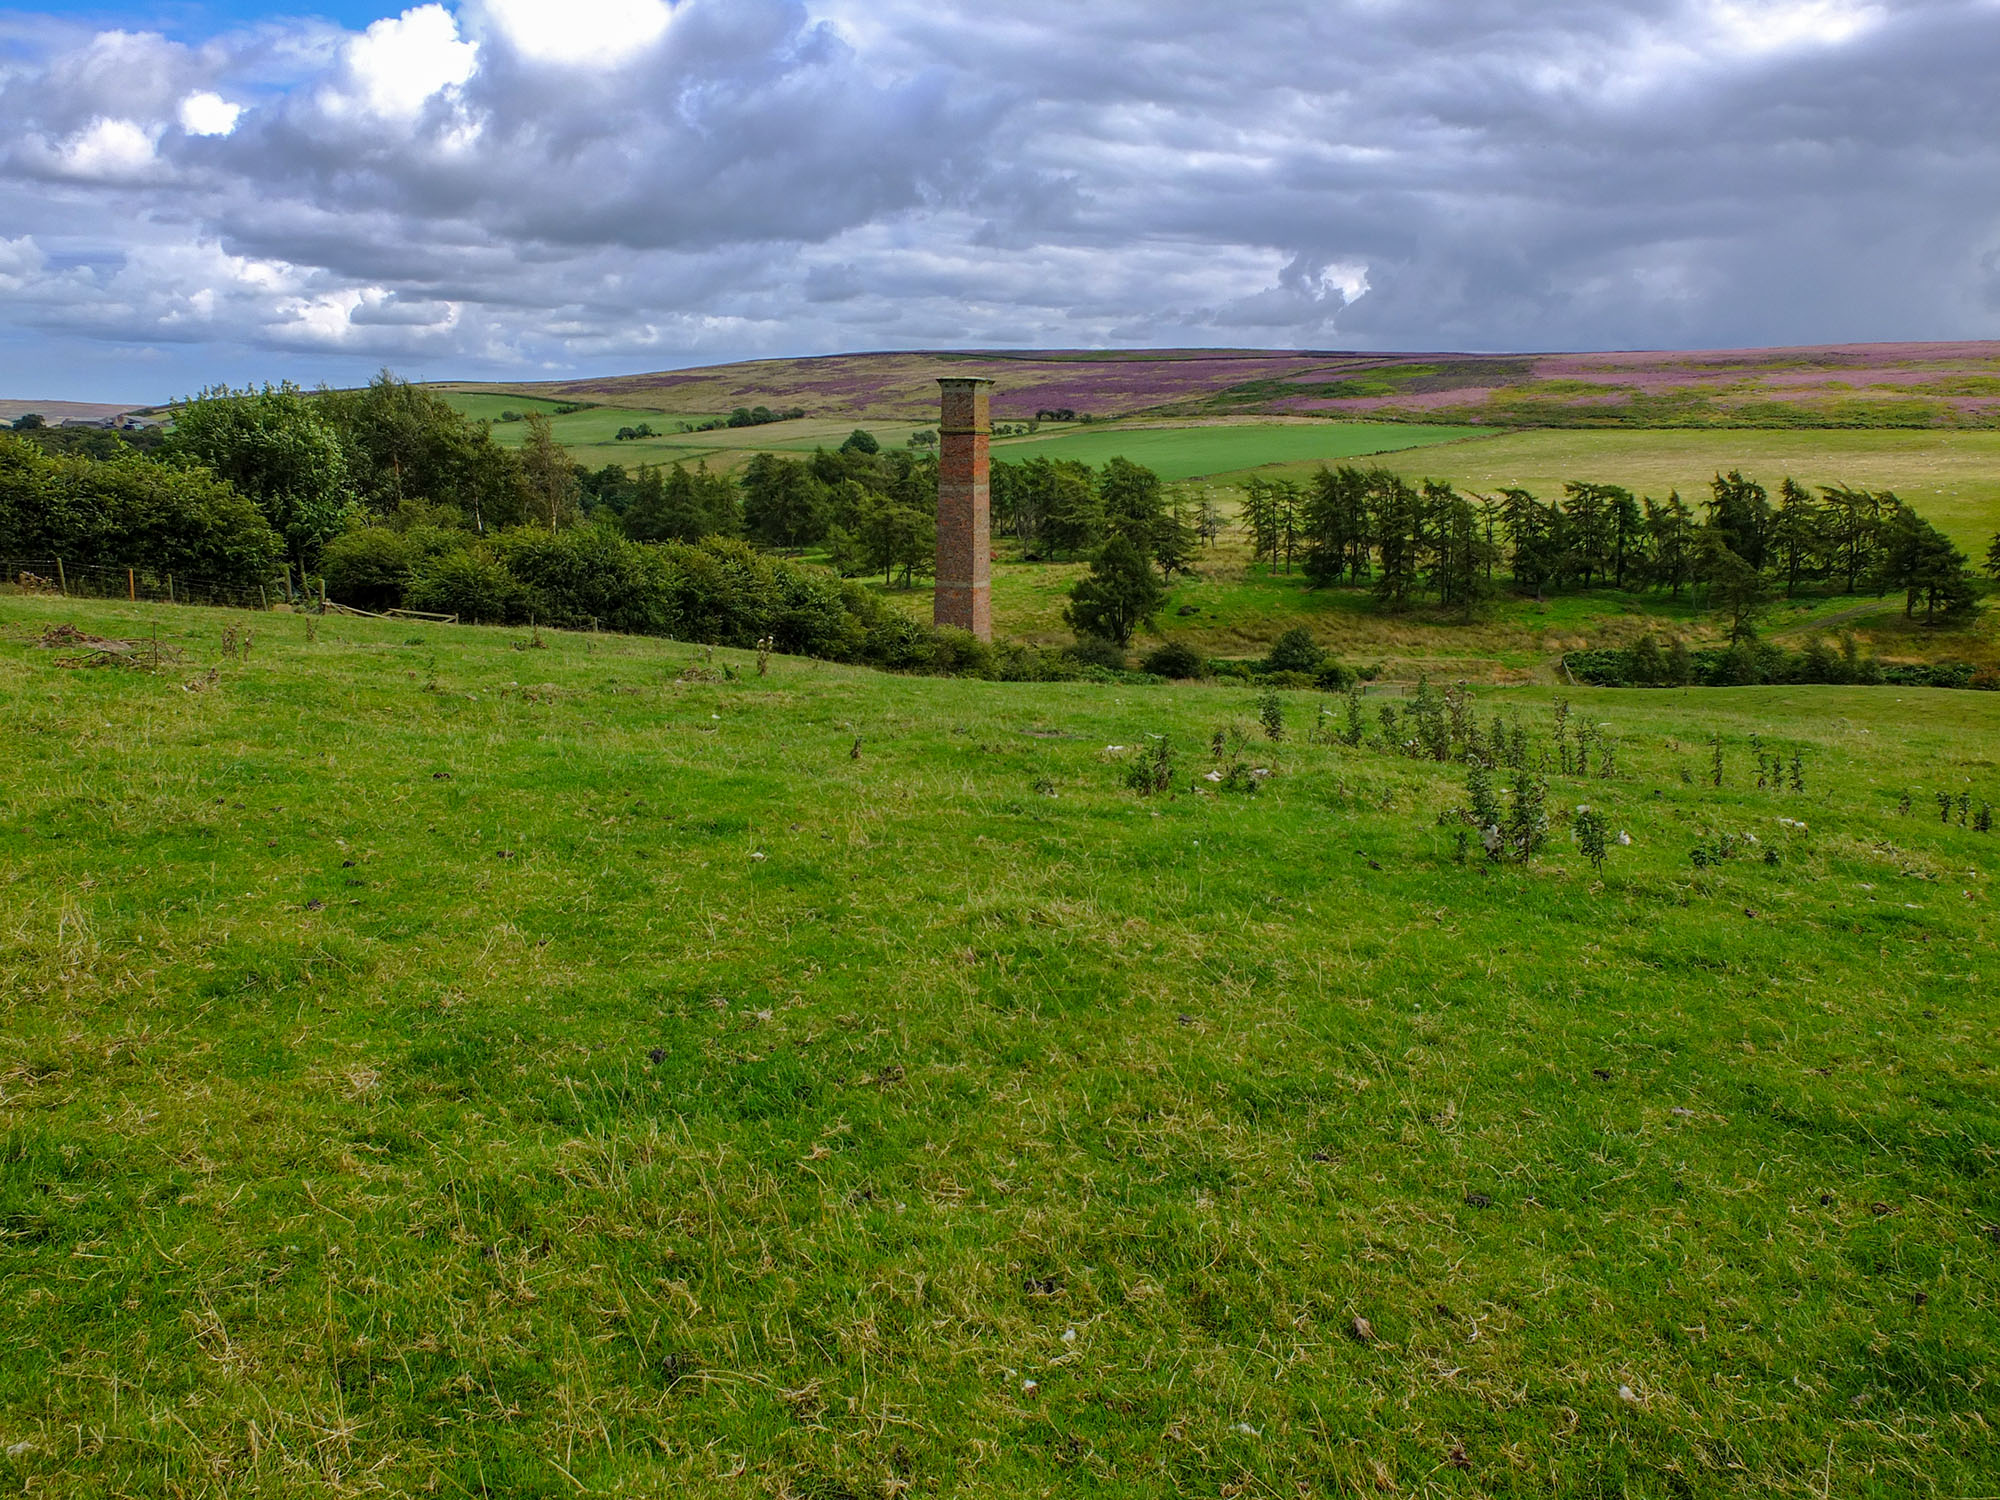 Ironstone | The official blog for the North York Moors National Park